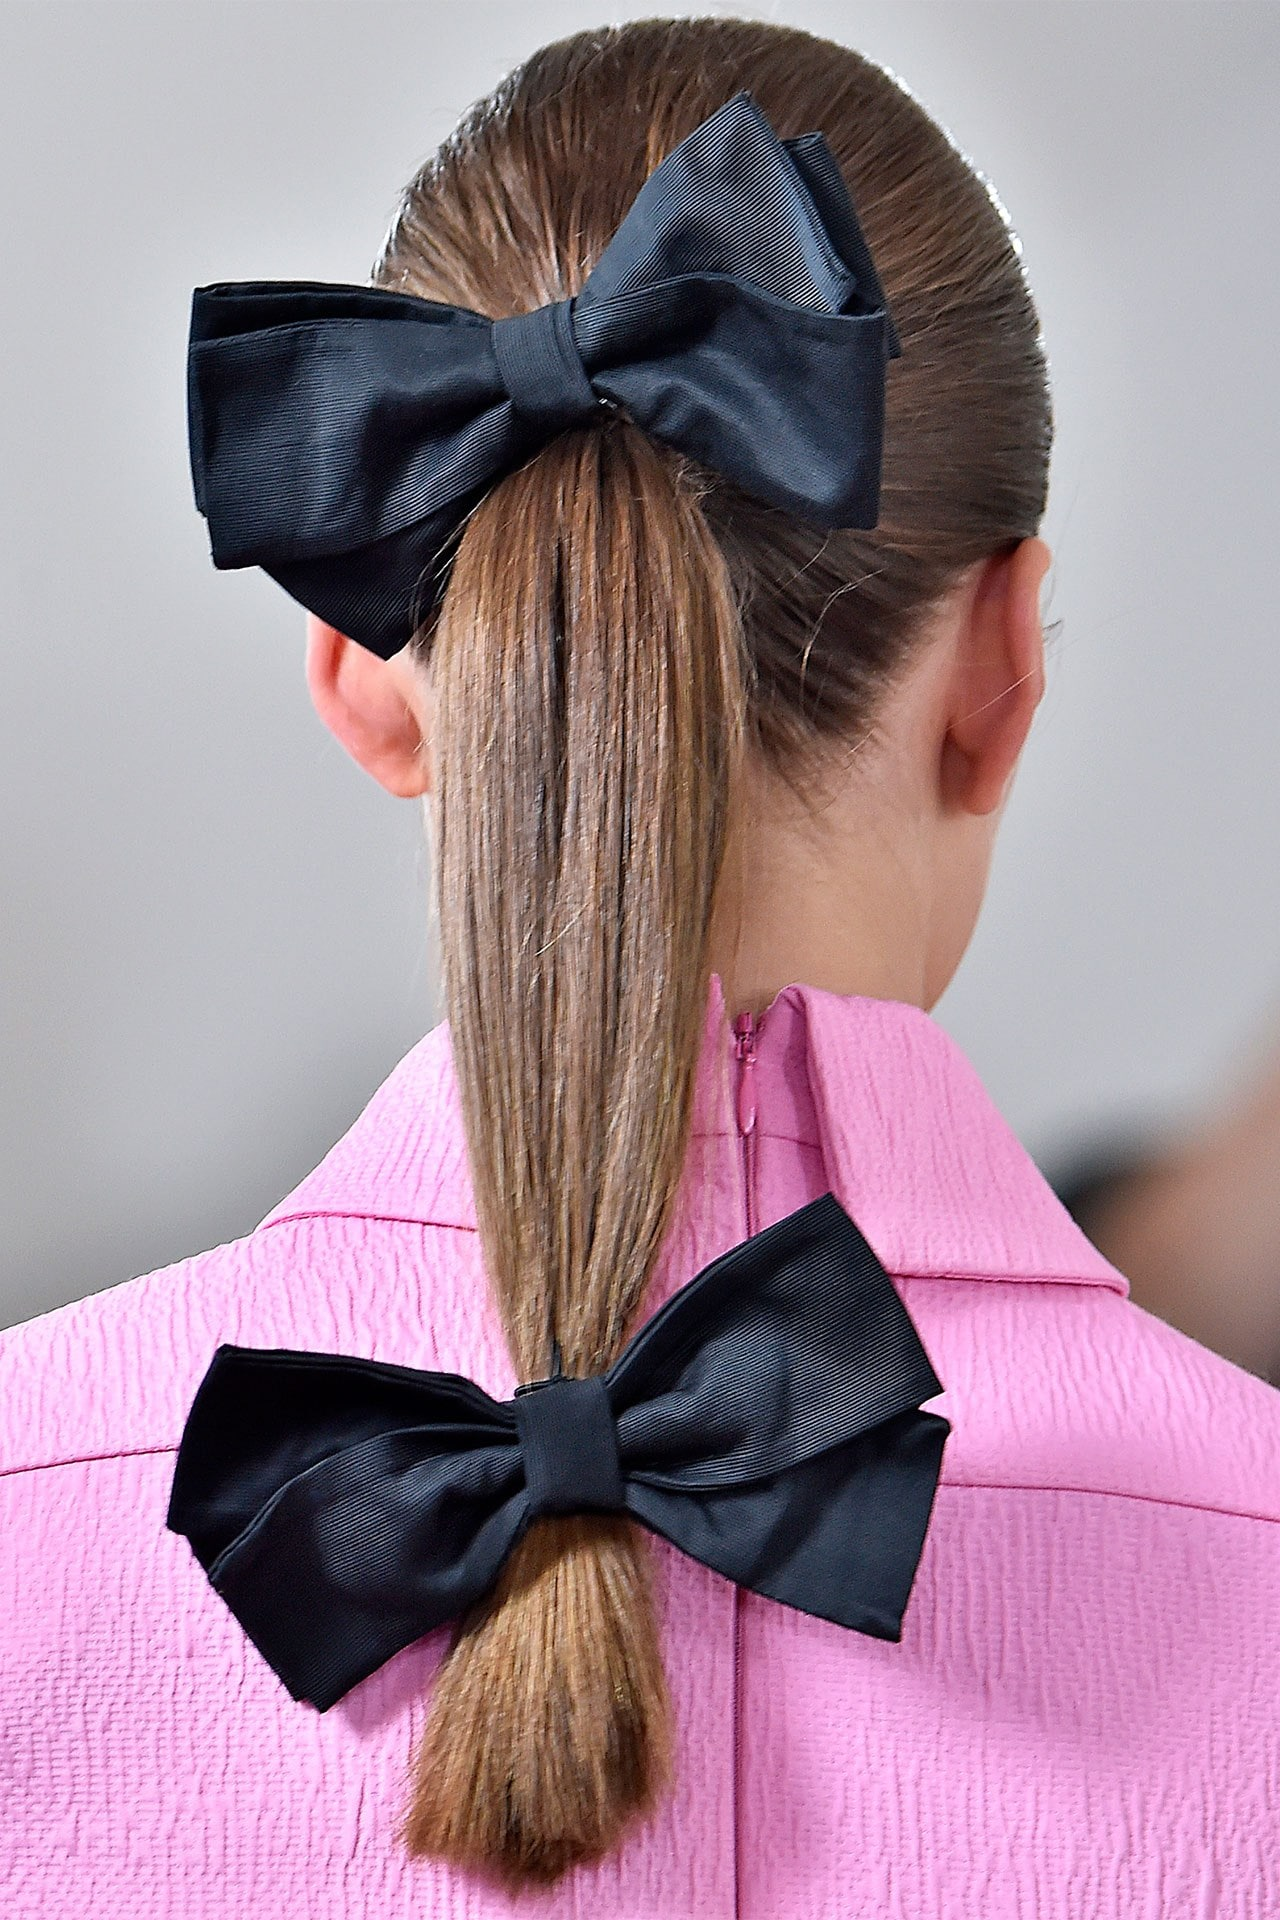 The expert guide to 4 hairstyles that will see you through any occasion